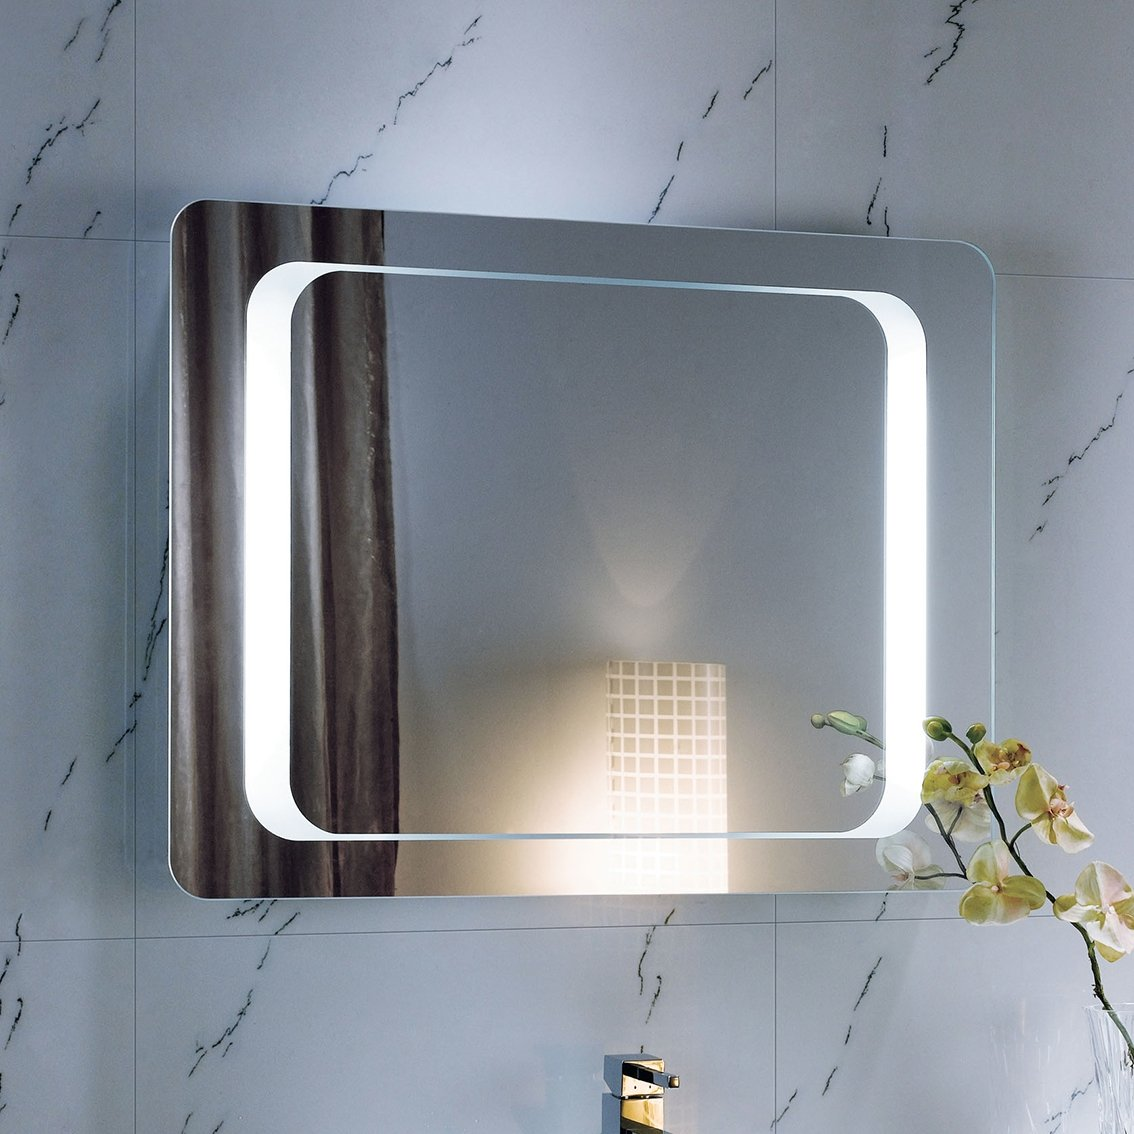 800 x 600 mm Illuminated LED Bathroom Mirror Light with Sensor + Demister ML2112 iBathUK